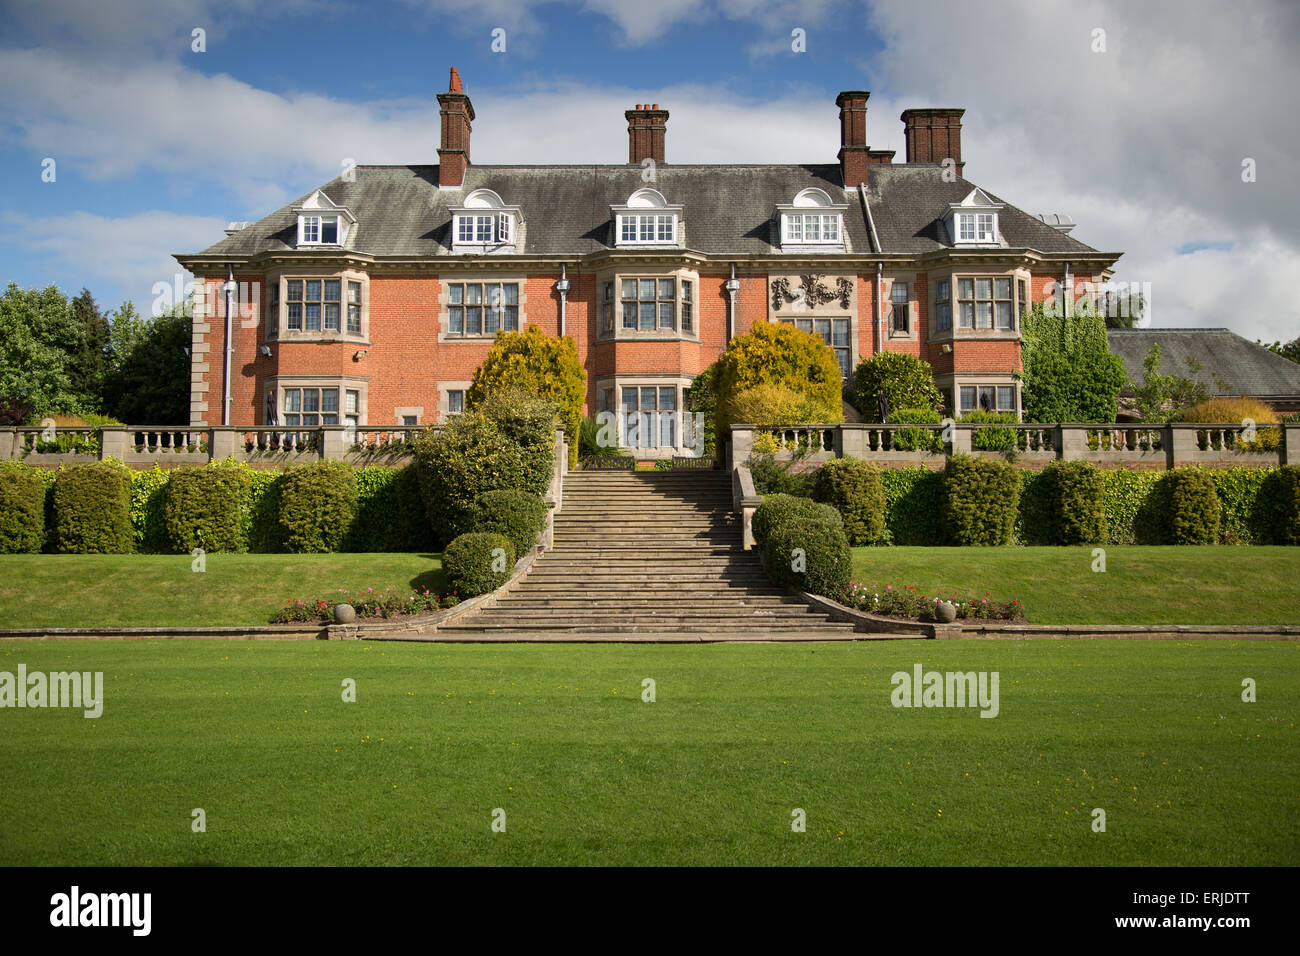 Dunchurch Park Hotel, nr Rugby, Warwickshire - Stock Image